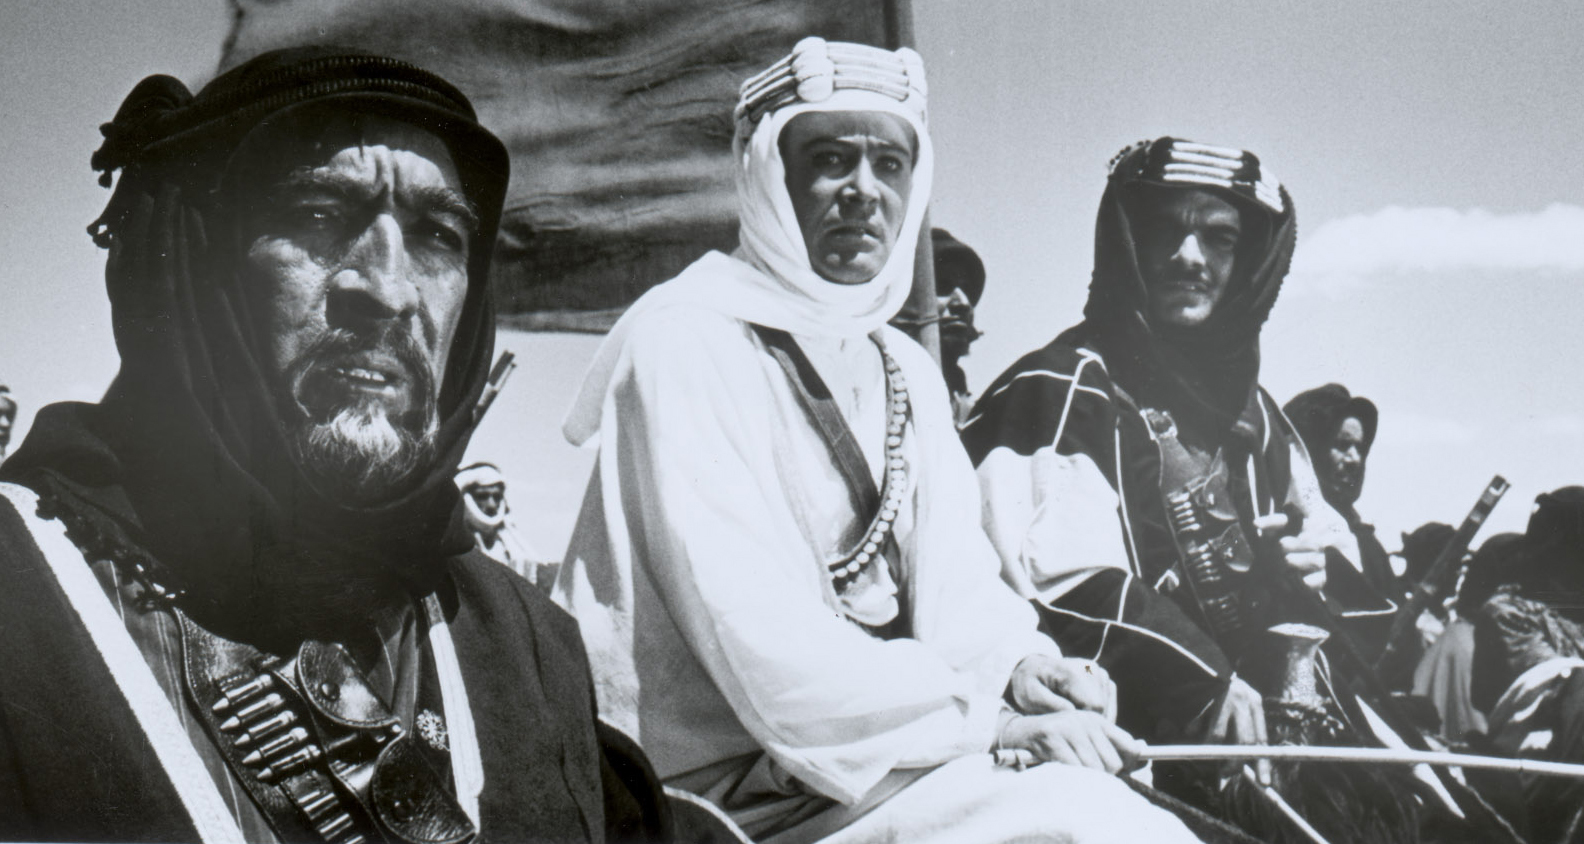 Anthony Quinn (left) stars as Auda abu Tayi, Peter O'Toole (center) as T.E. Lawrence, and Omar Sharif (right) as Sherif Ali ibn Kharish, as they wage war against the Turks, in 'Lawrence of Arabia.'